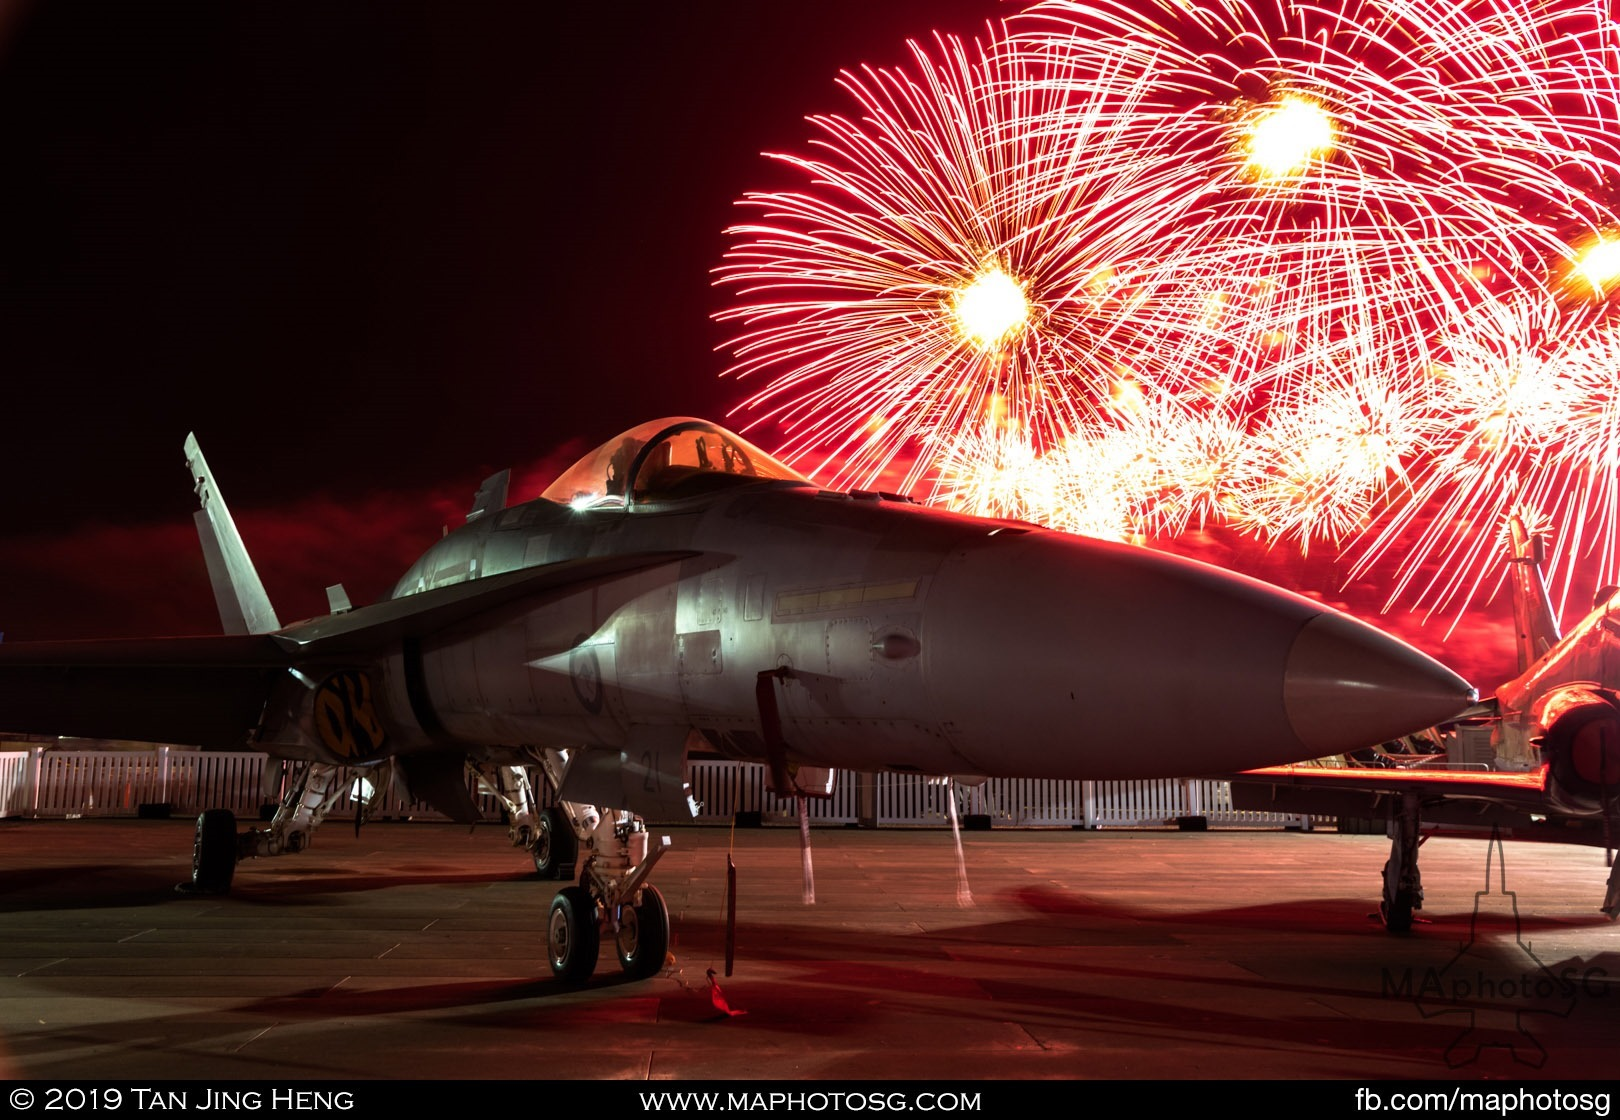 Finale Fireworks with RAAF F/A-18 Hornet